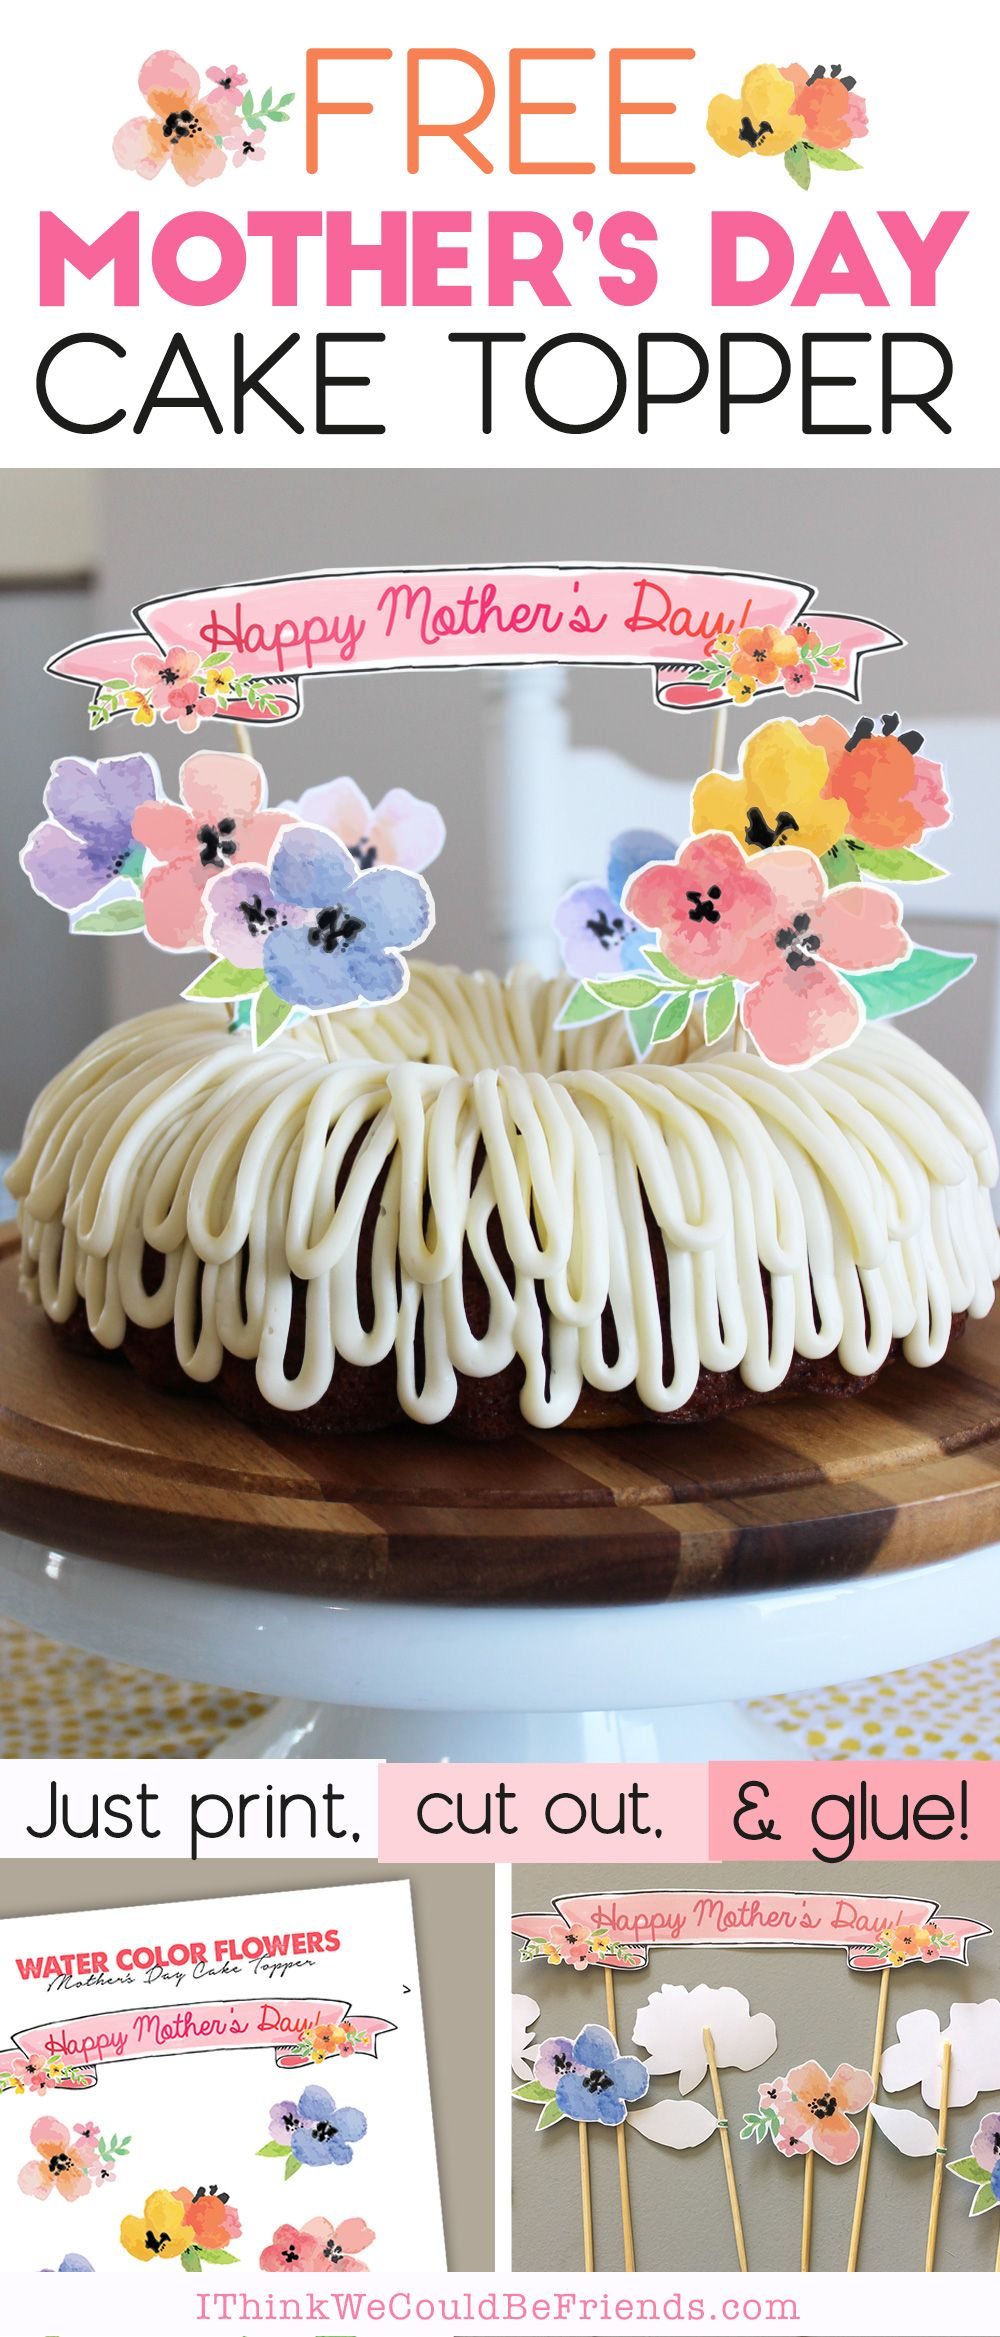 Mother S Day Cake Ideas Free Printable Floral Cake Topper Decoration Floral Cake Topper Diy Cake Topper Birthday Cake Topper Printable